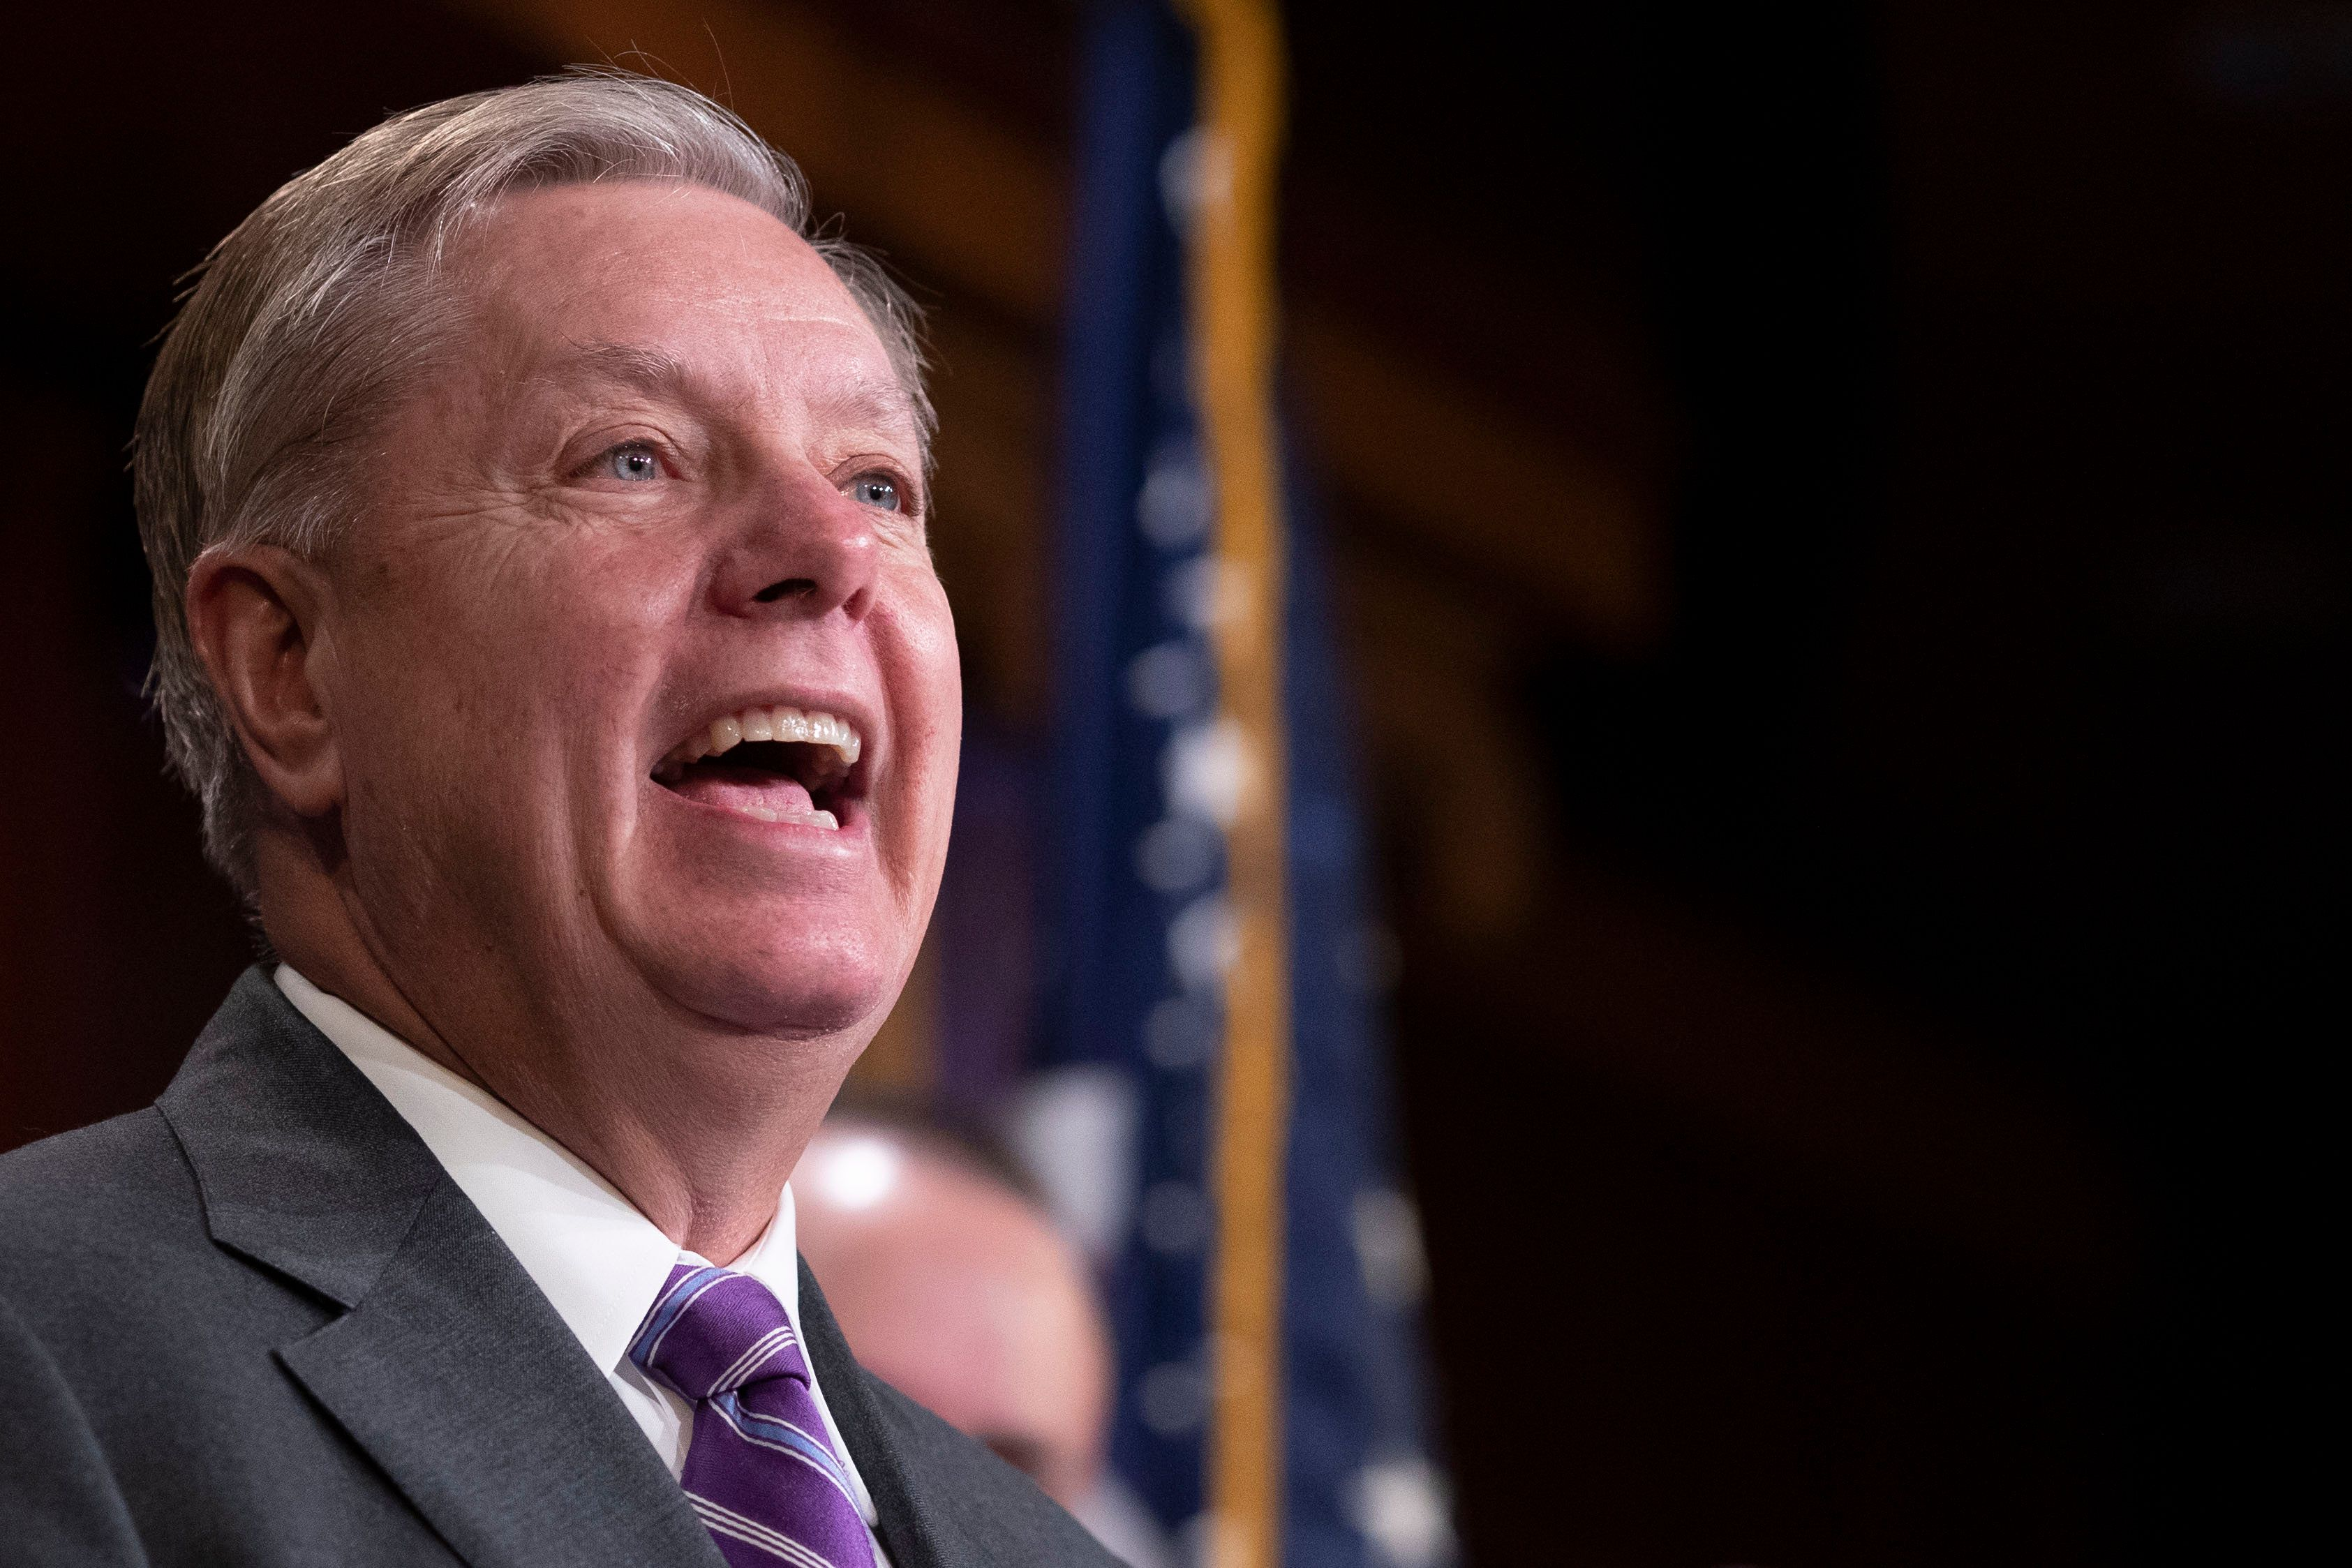 Senator Lindsey Graham, Republican of South Carolina, speaks to reporters during a news conference celebrating the passage of the First Step Act at the United States Capitol in Washington, DC on December 19, 2018. Credit: Alex Edelman / CNP/Sipa USA